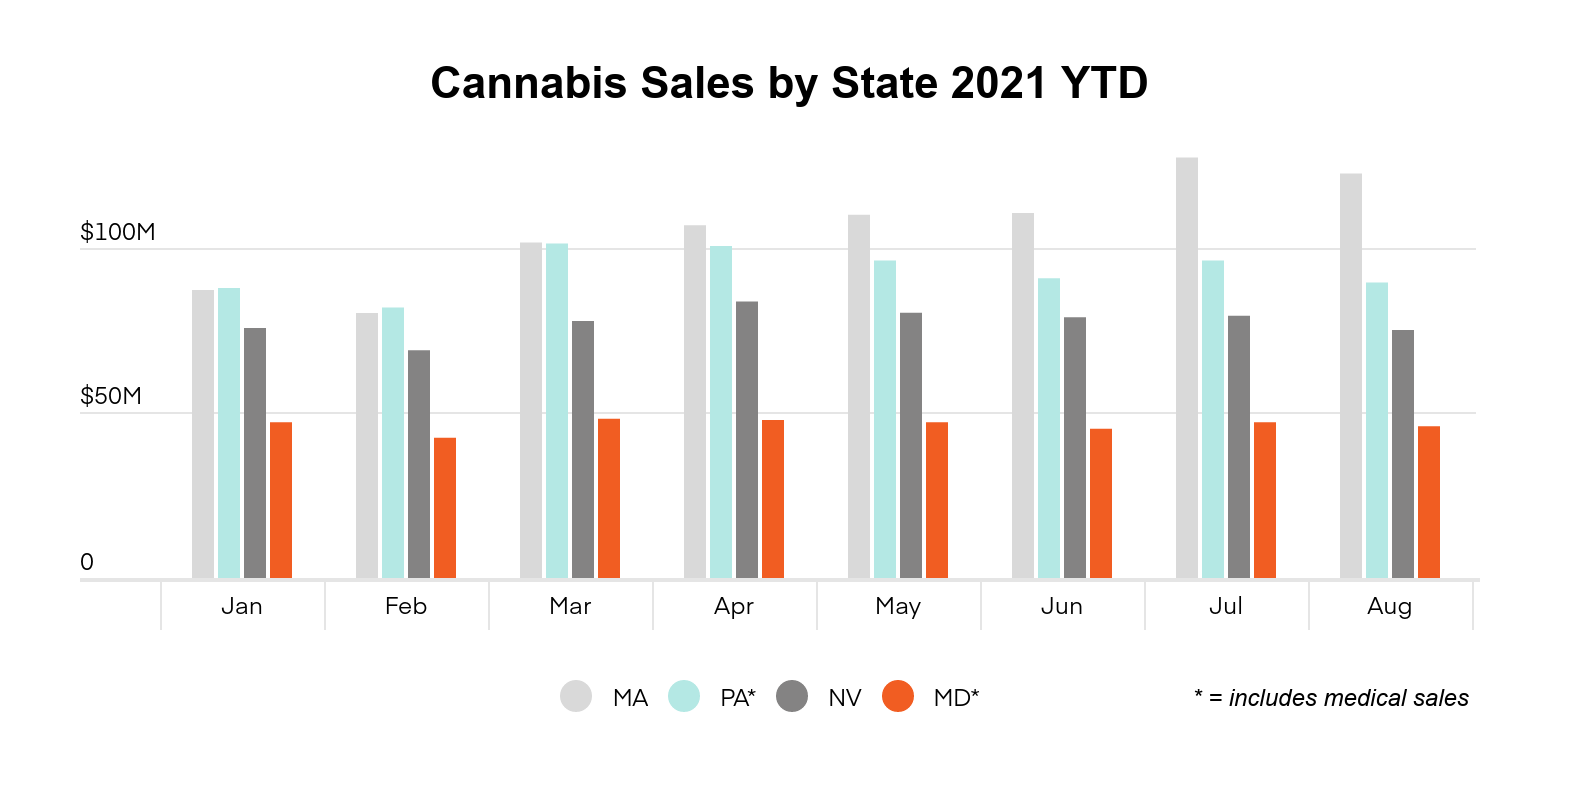 Maryland cannabis market report graph 2: Cannabis sales by state